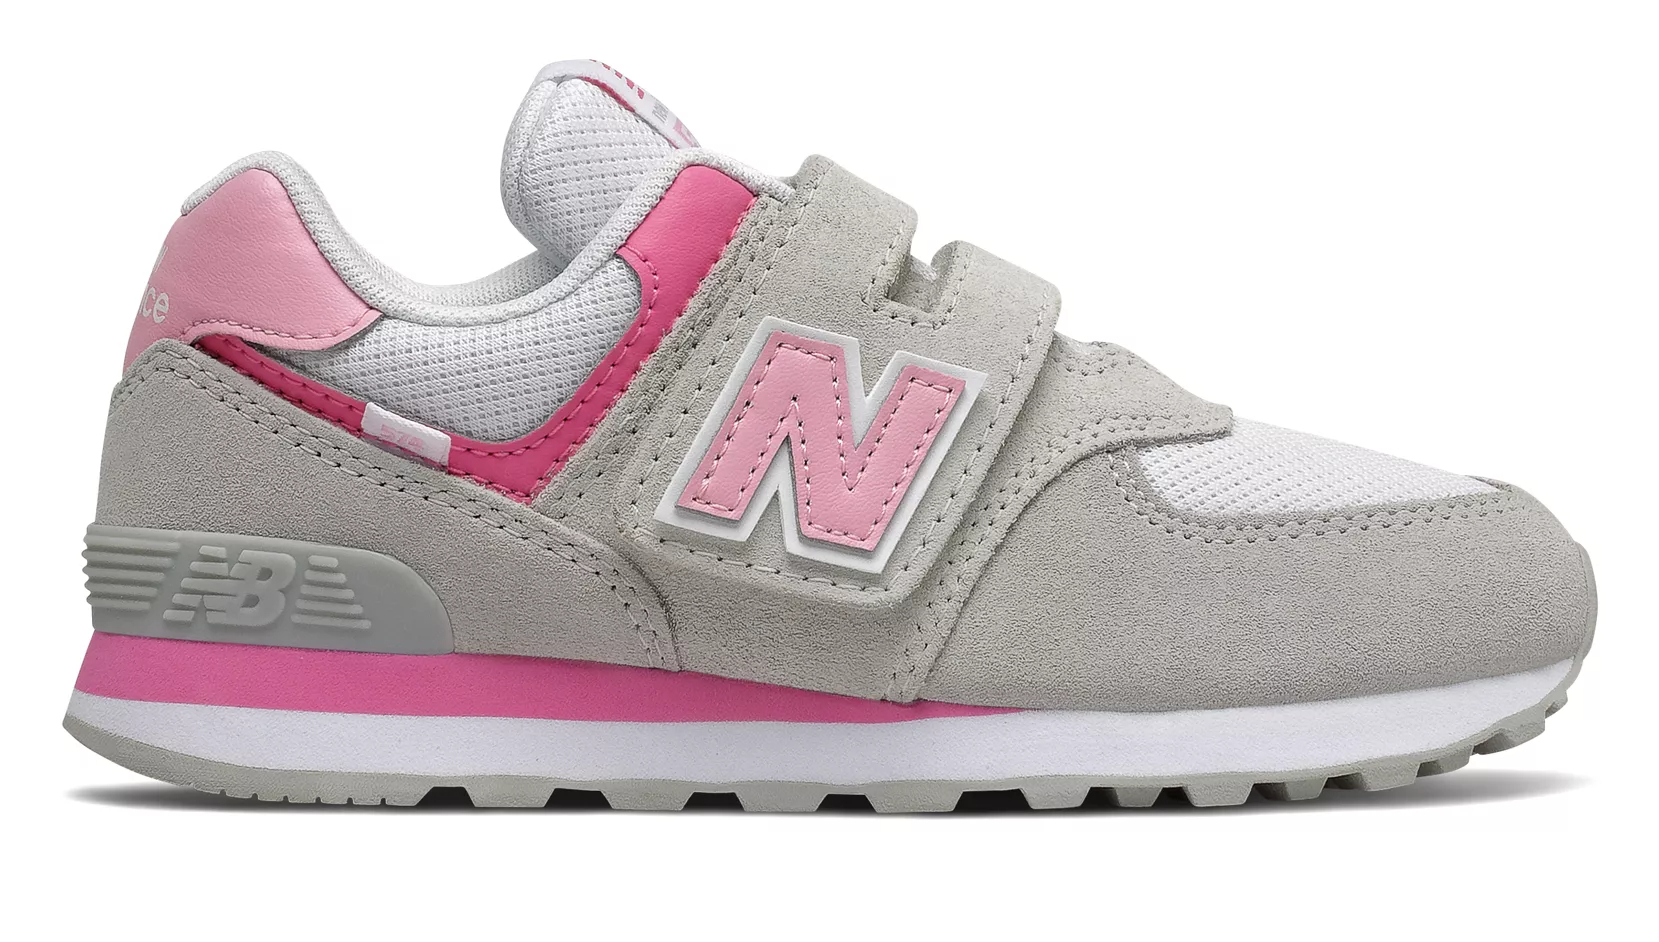 New Balance 547 sneakers